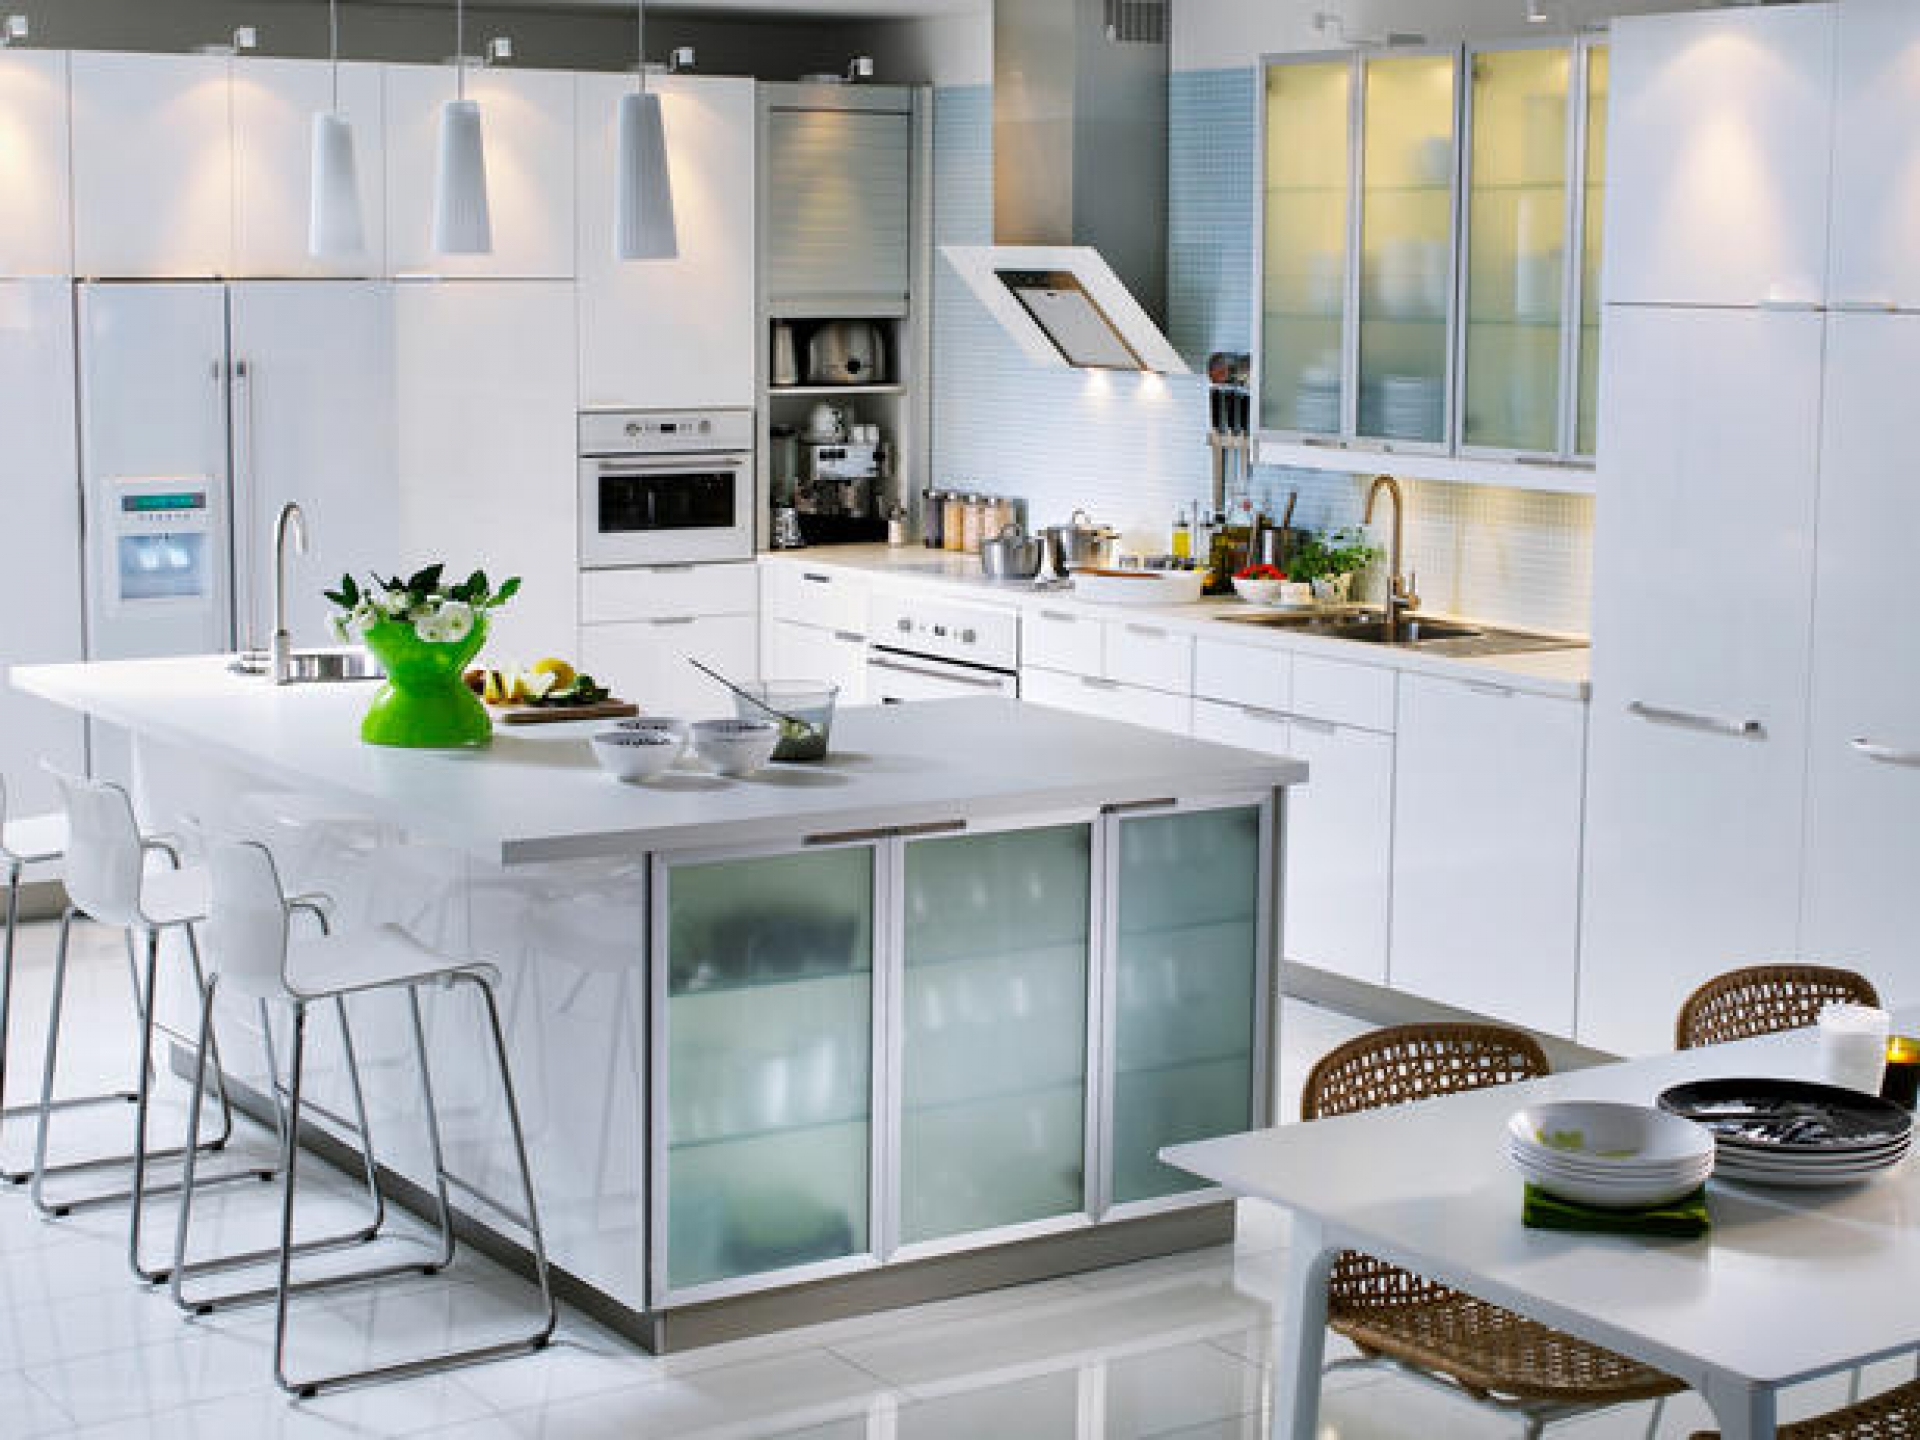 Attractive Kitchen Design Application From IKEA Online (Image 1 of 10)